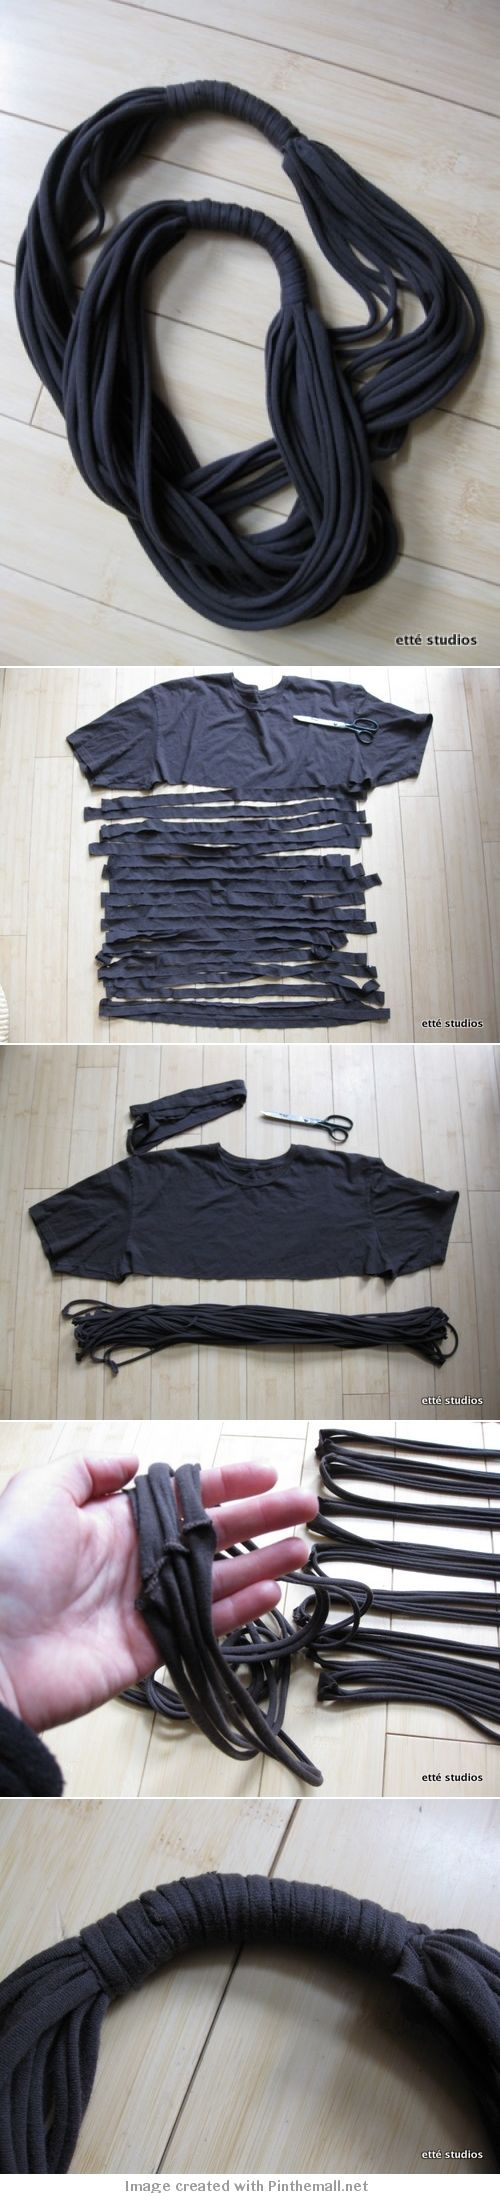 DIY Upcycled Rope Tshirt Scarf Tutorial.